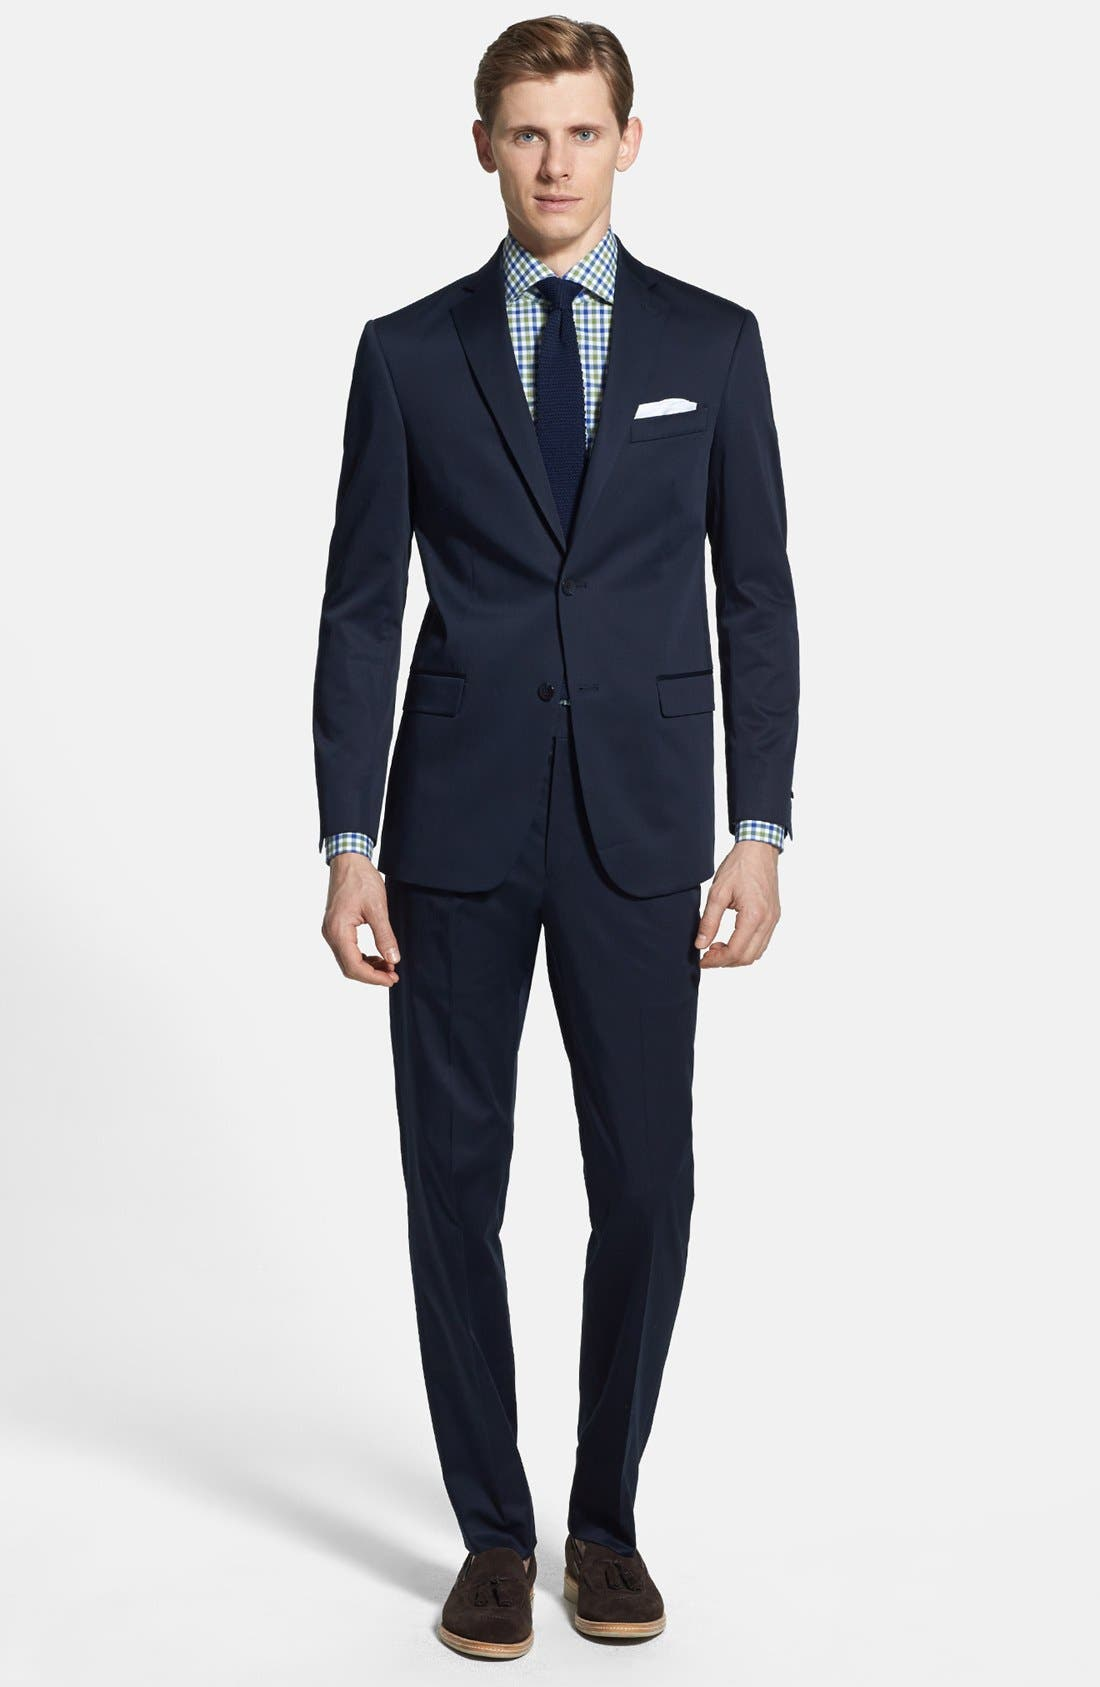 Main Image - 2B SV FF SOLID TRIM FIT SUIT